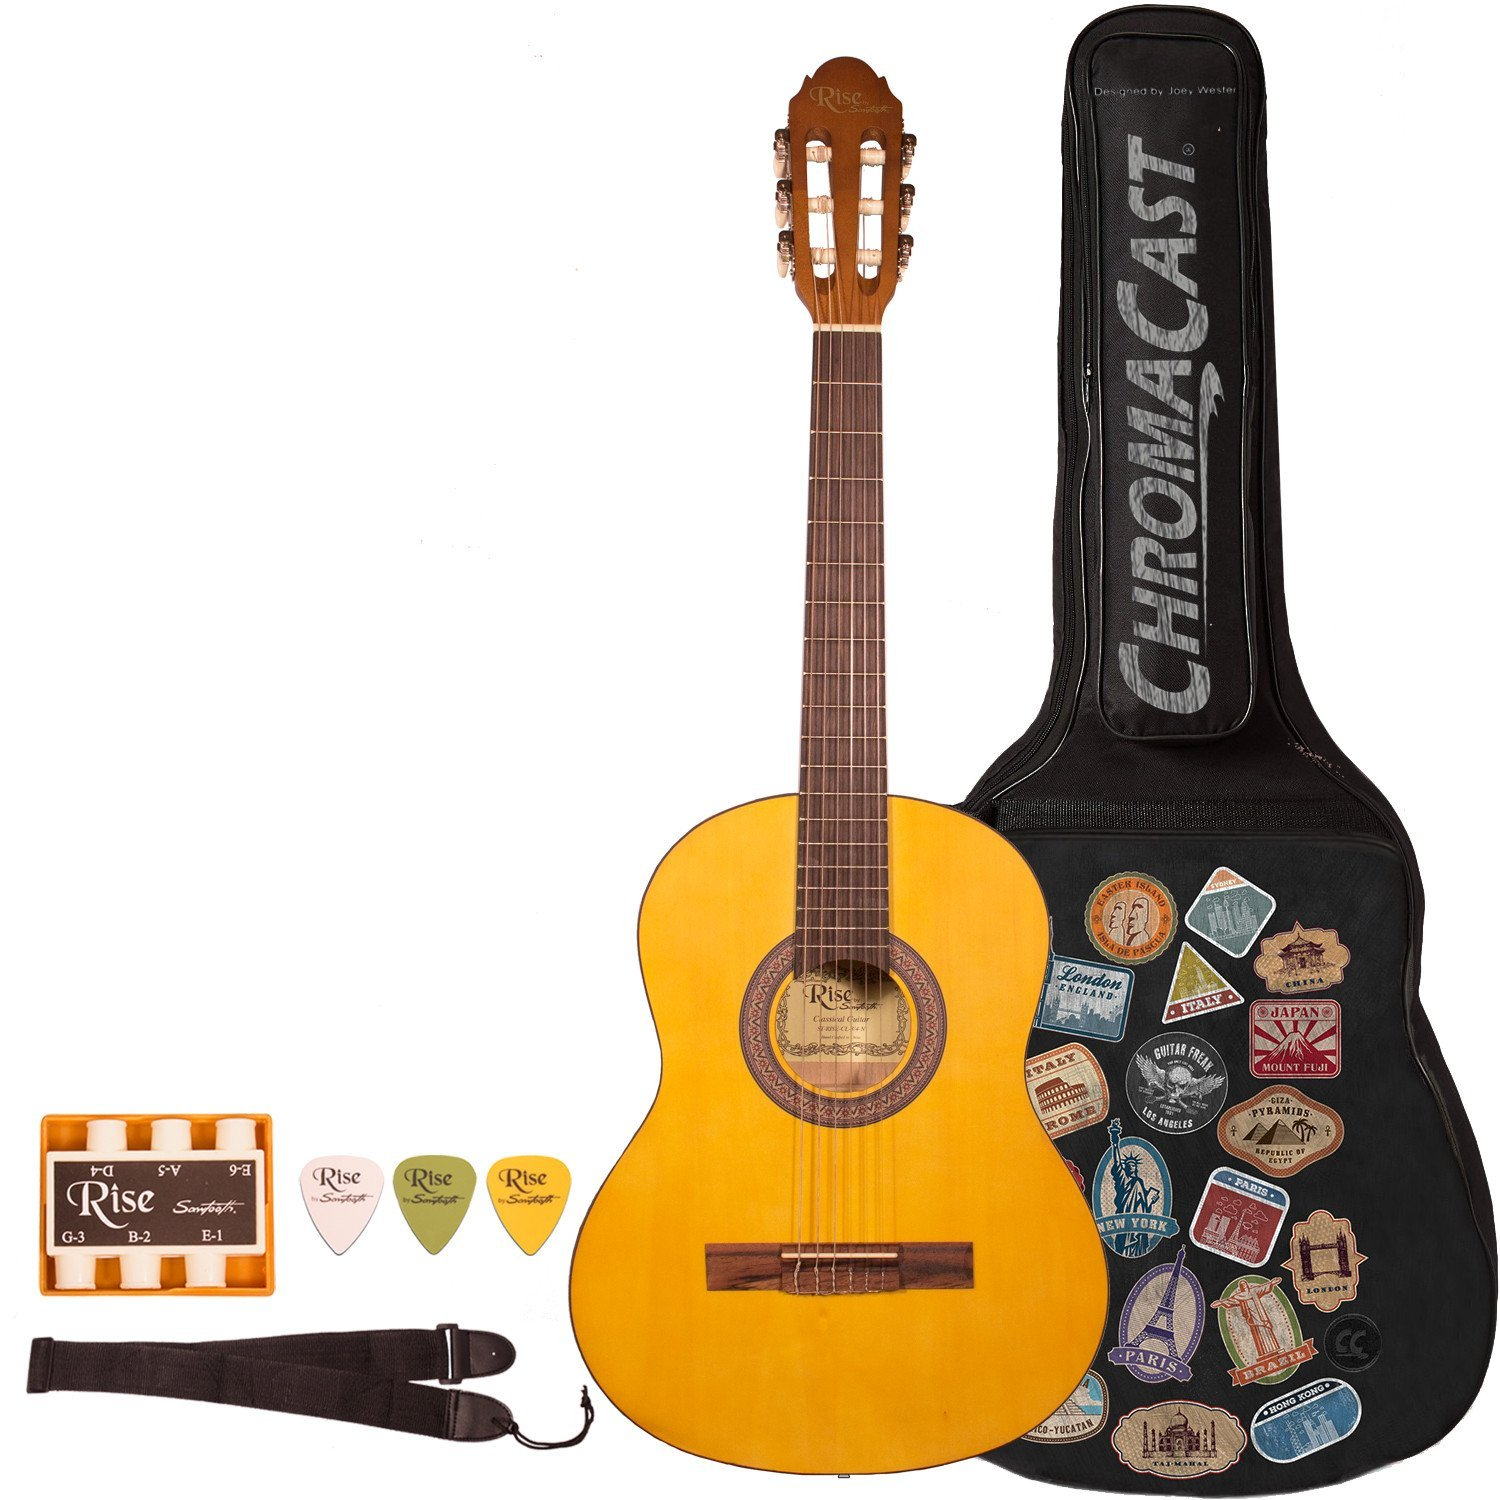 Rise by Sawtooth Full Size Beginner's Acoustic Guitar with World Tour Graphic Gig Bag and Accessories, Satin Gold Stain